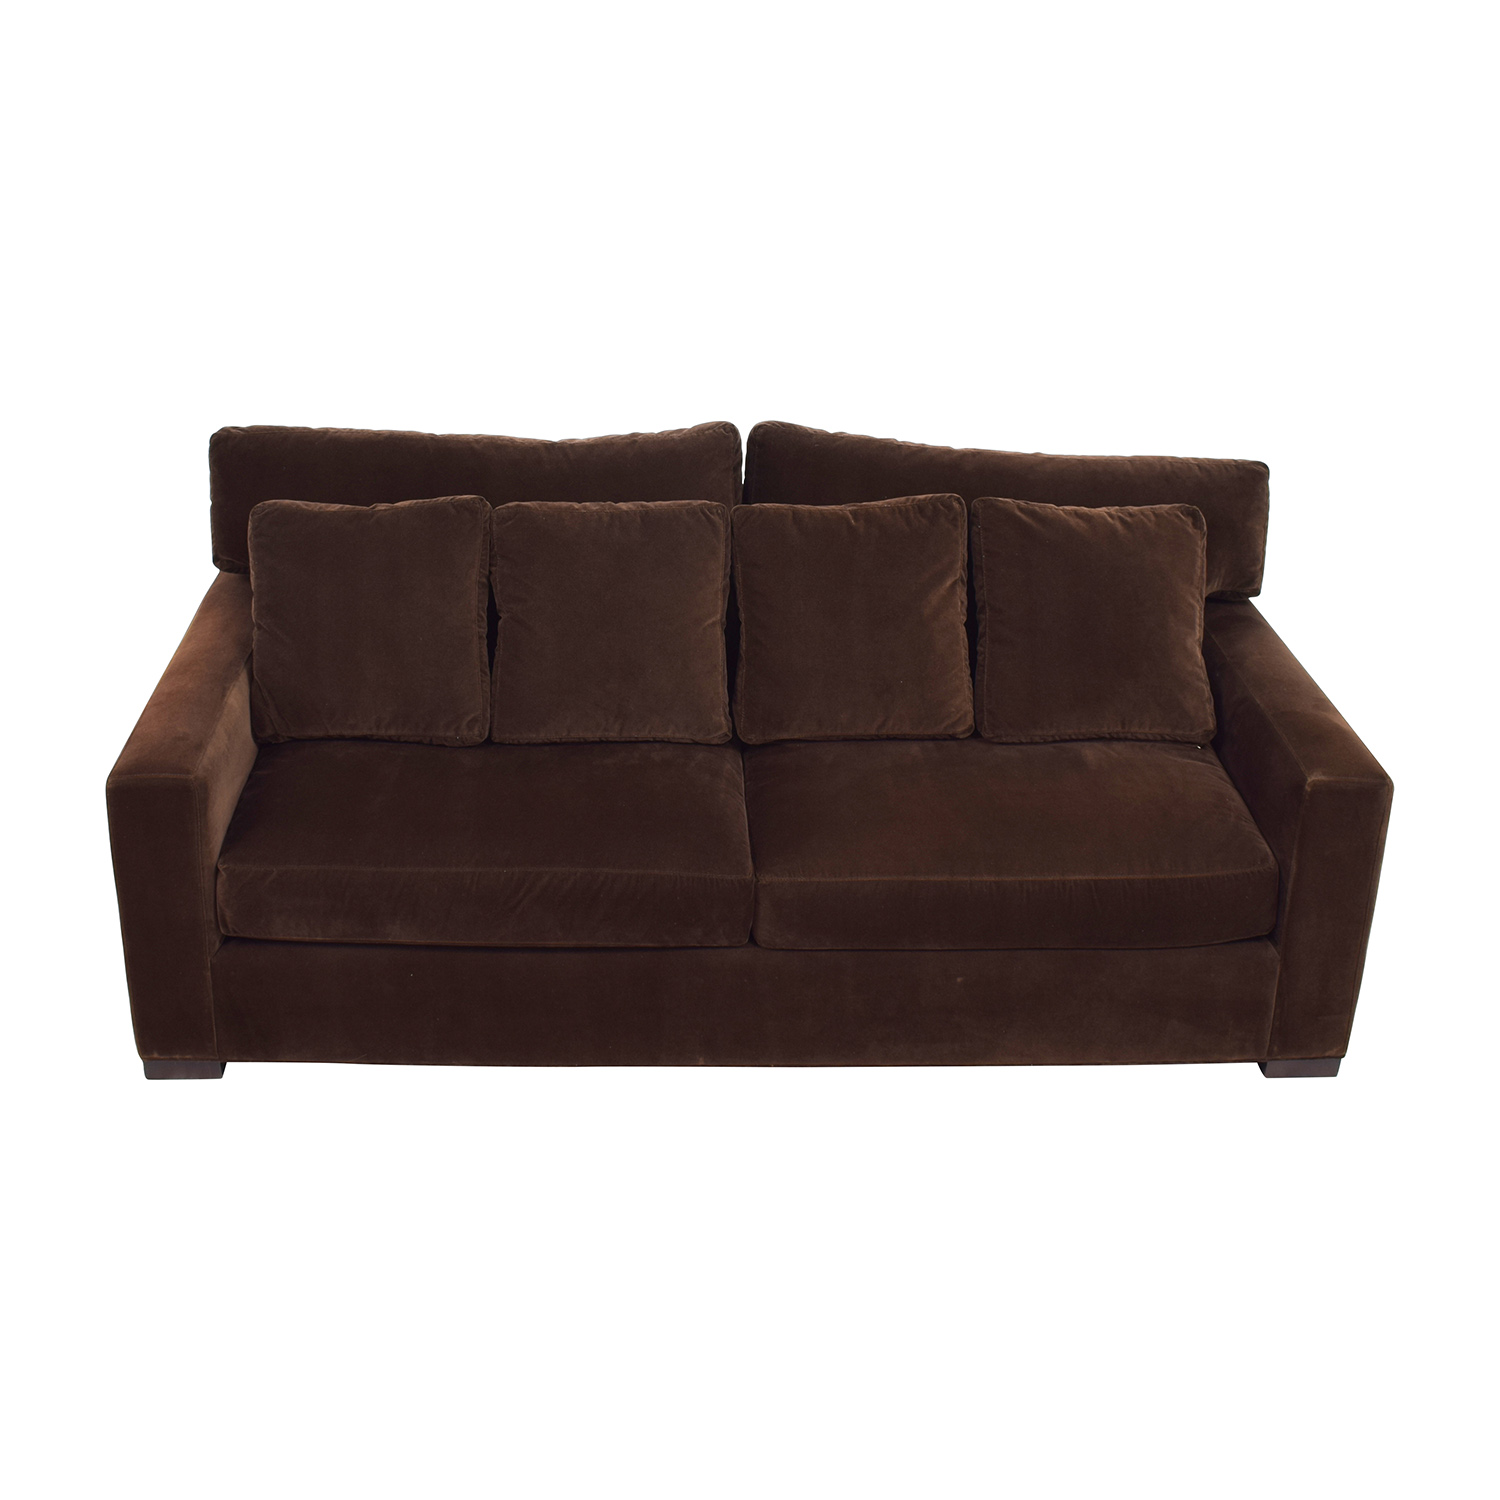 Crate and  Barrel Crate & Barrel Axis II Brown Velvet Sofa for sale